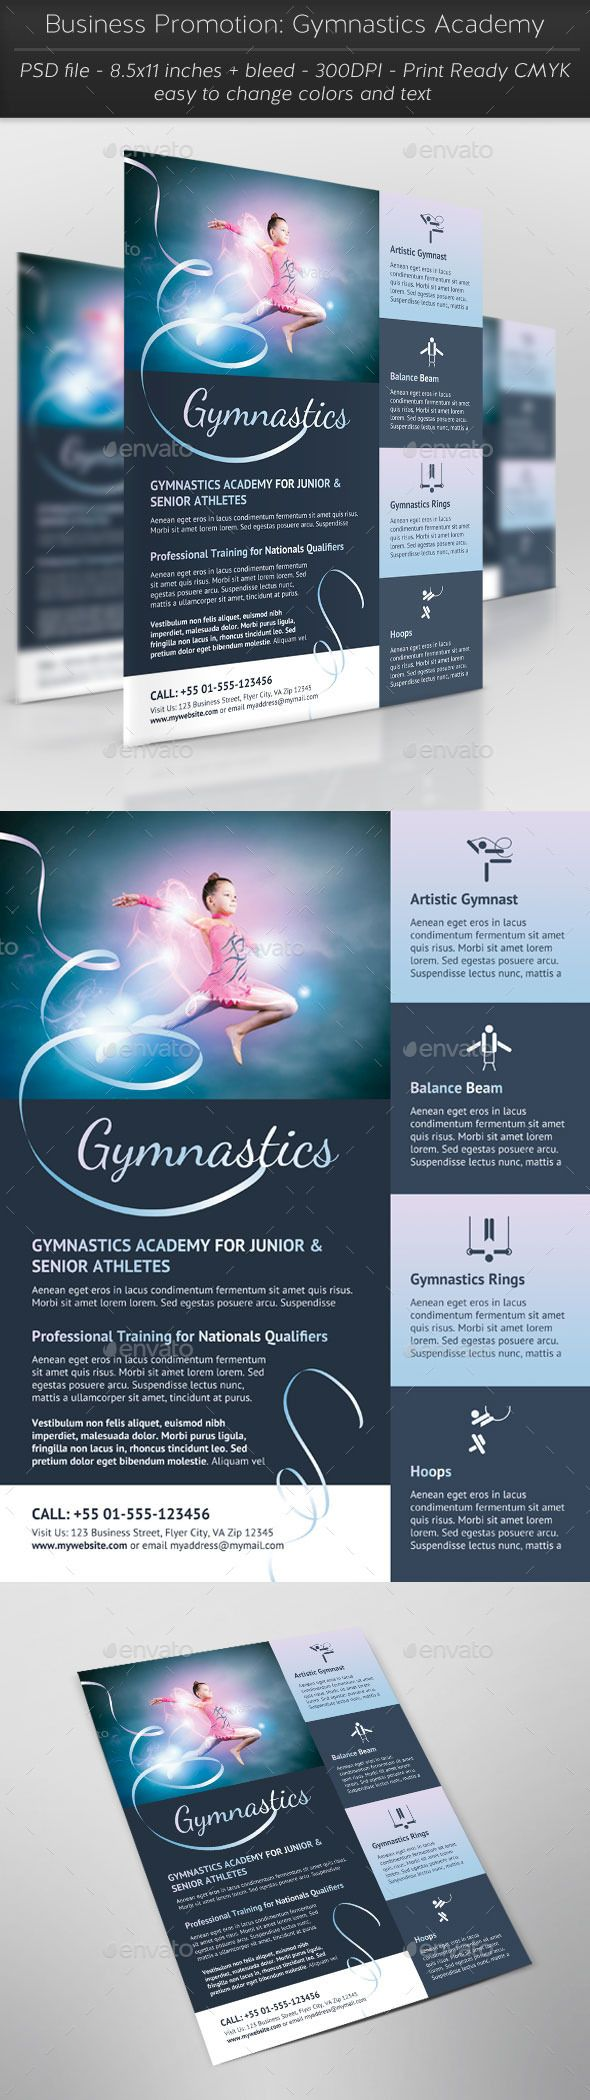 Business Promotion: Gymnastics Academy